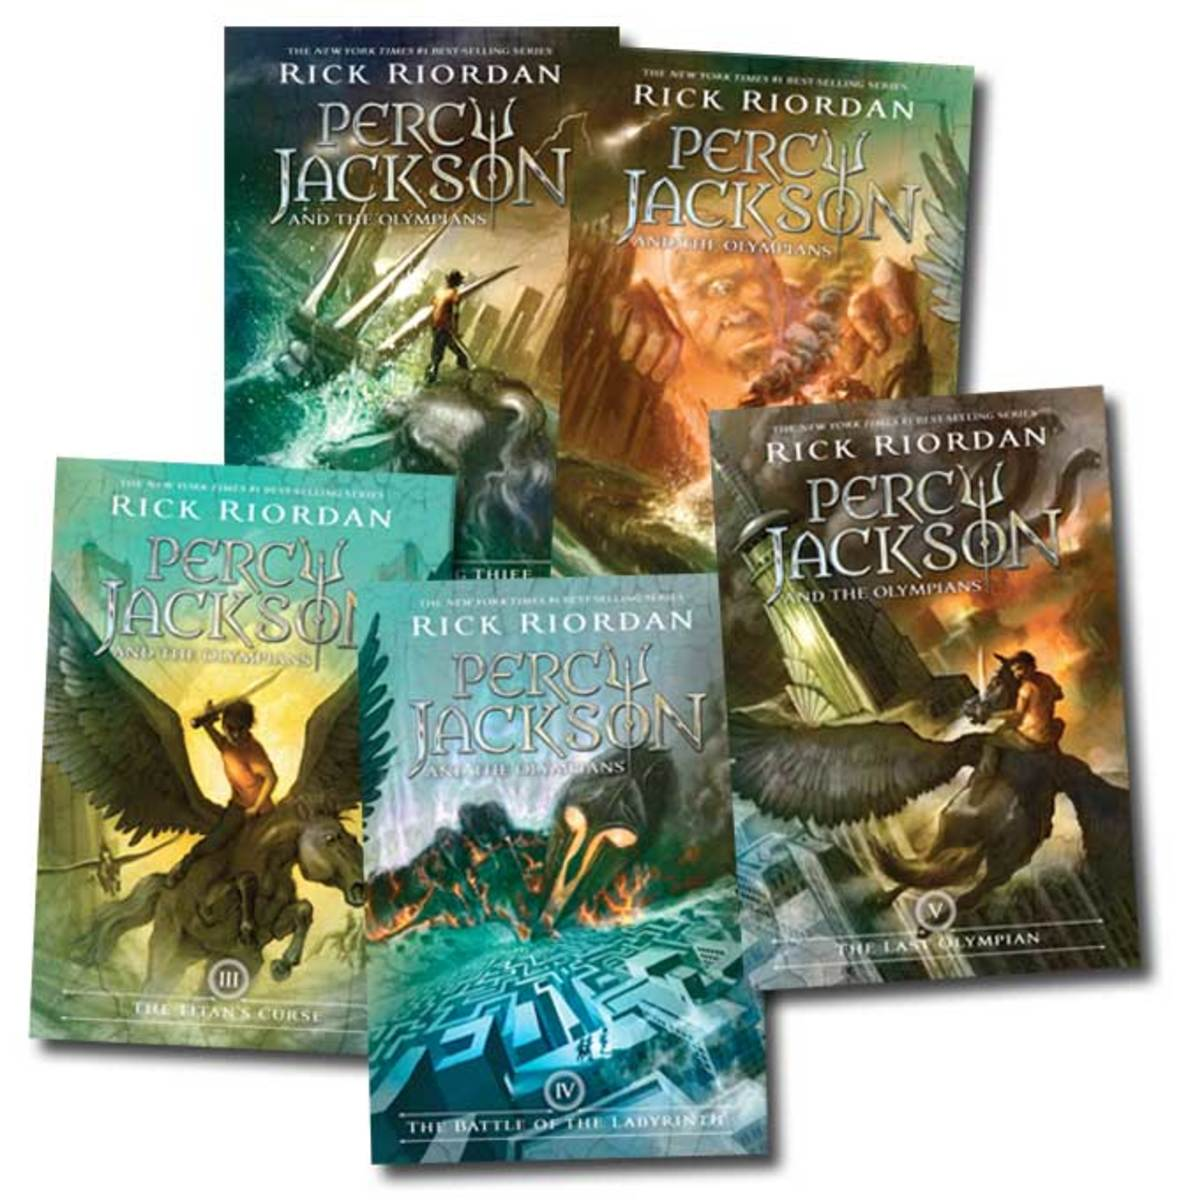 Rick Riordan first conceived this series as an ongoing bedtime story for his son, Haley, who was diagnosed with ADHD and dyslexia. Percy therefore also has ADHD and dyslexia.